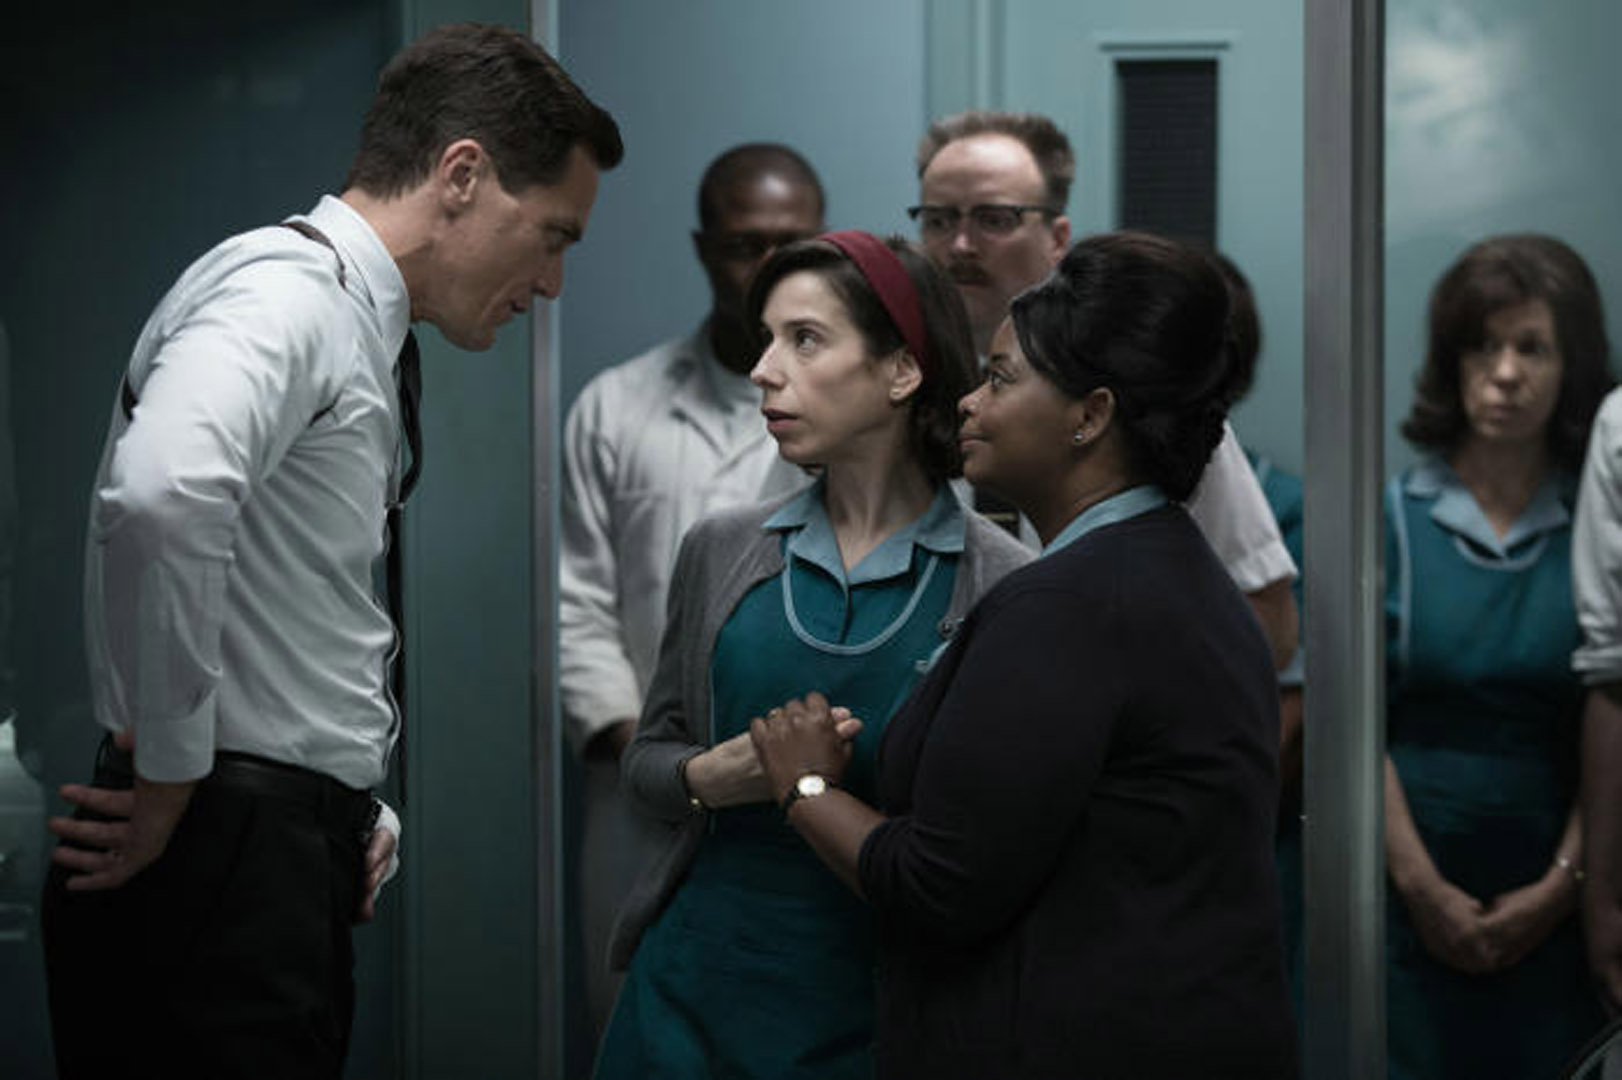 Shape of water / Michael Shannon, Octavia Spencer, Foto: Twentieth Century Fox of Germany GmbH